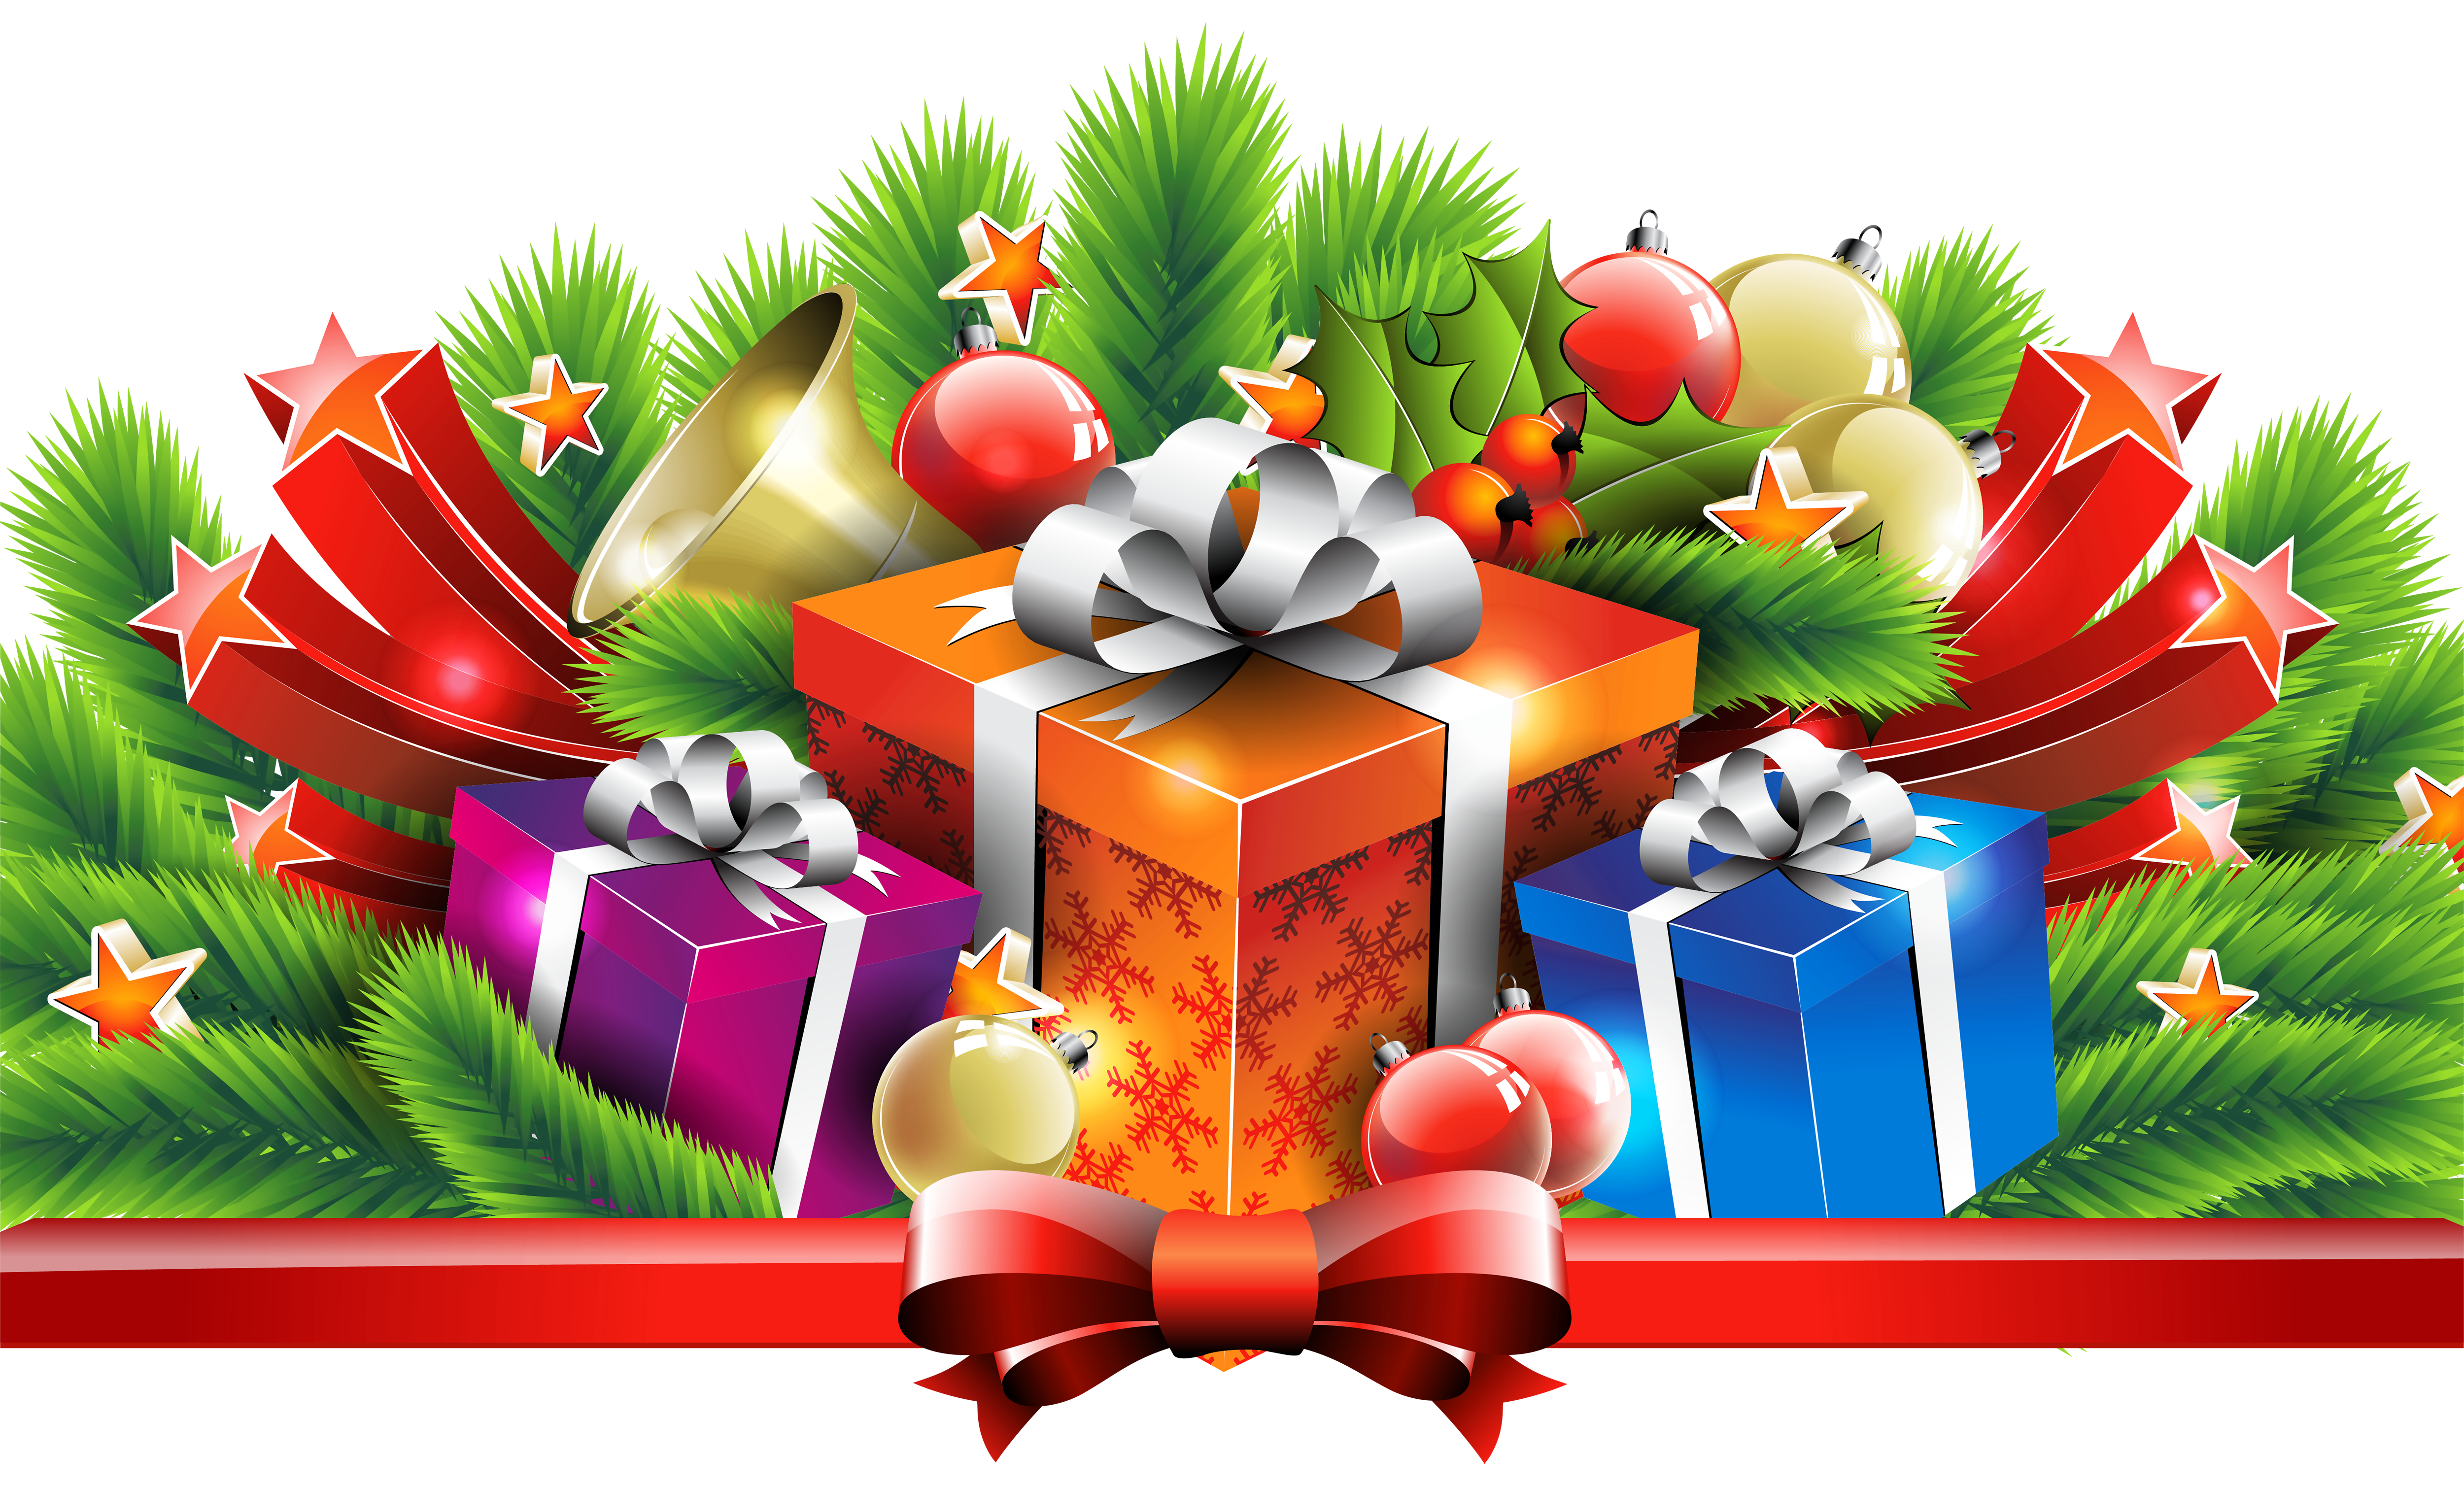 Christmas Gifts Decor PNG Clipart Image.